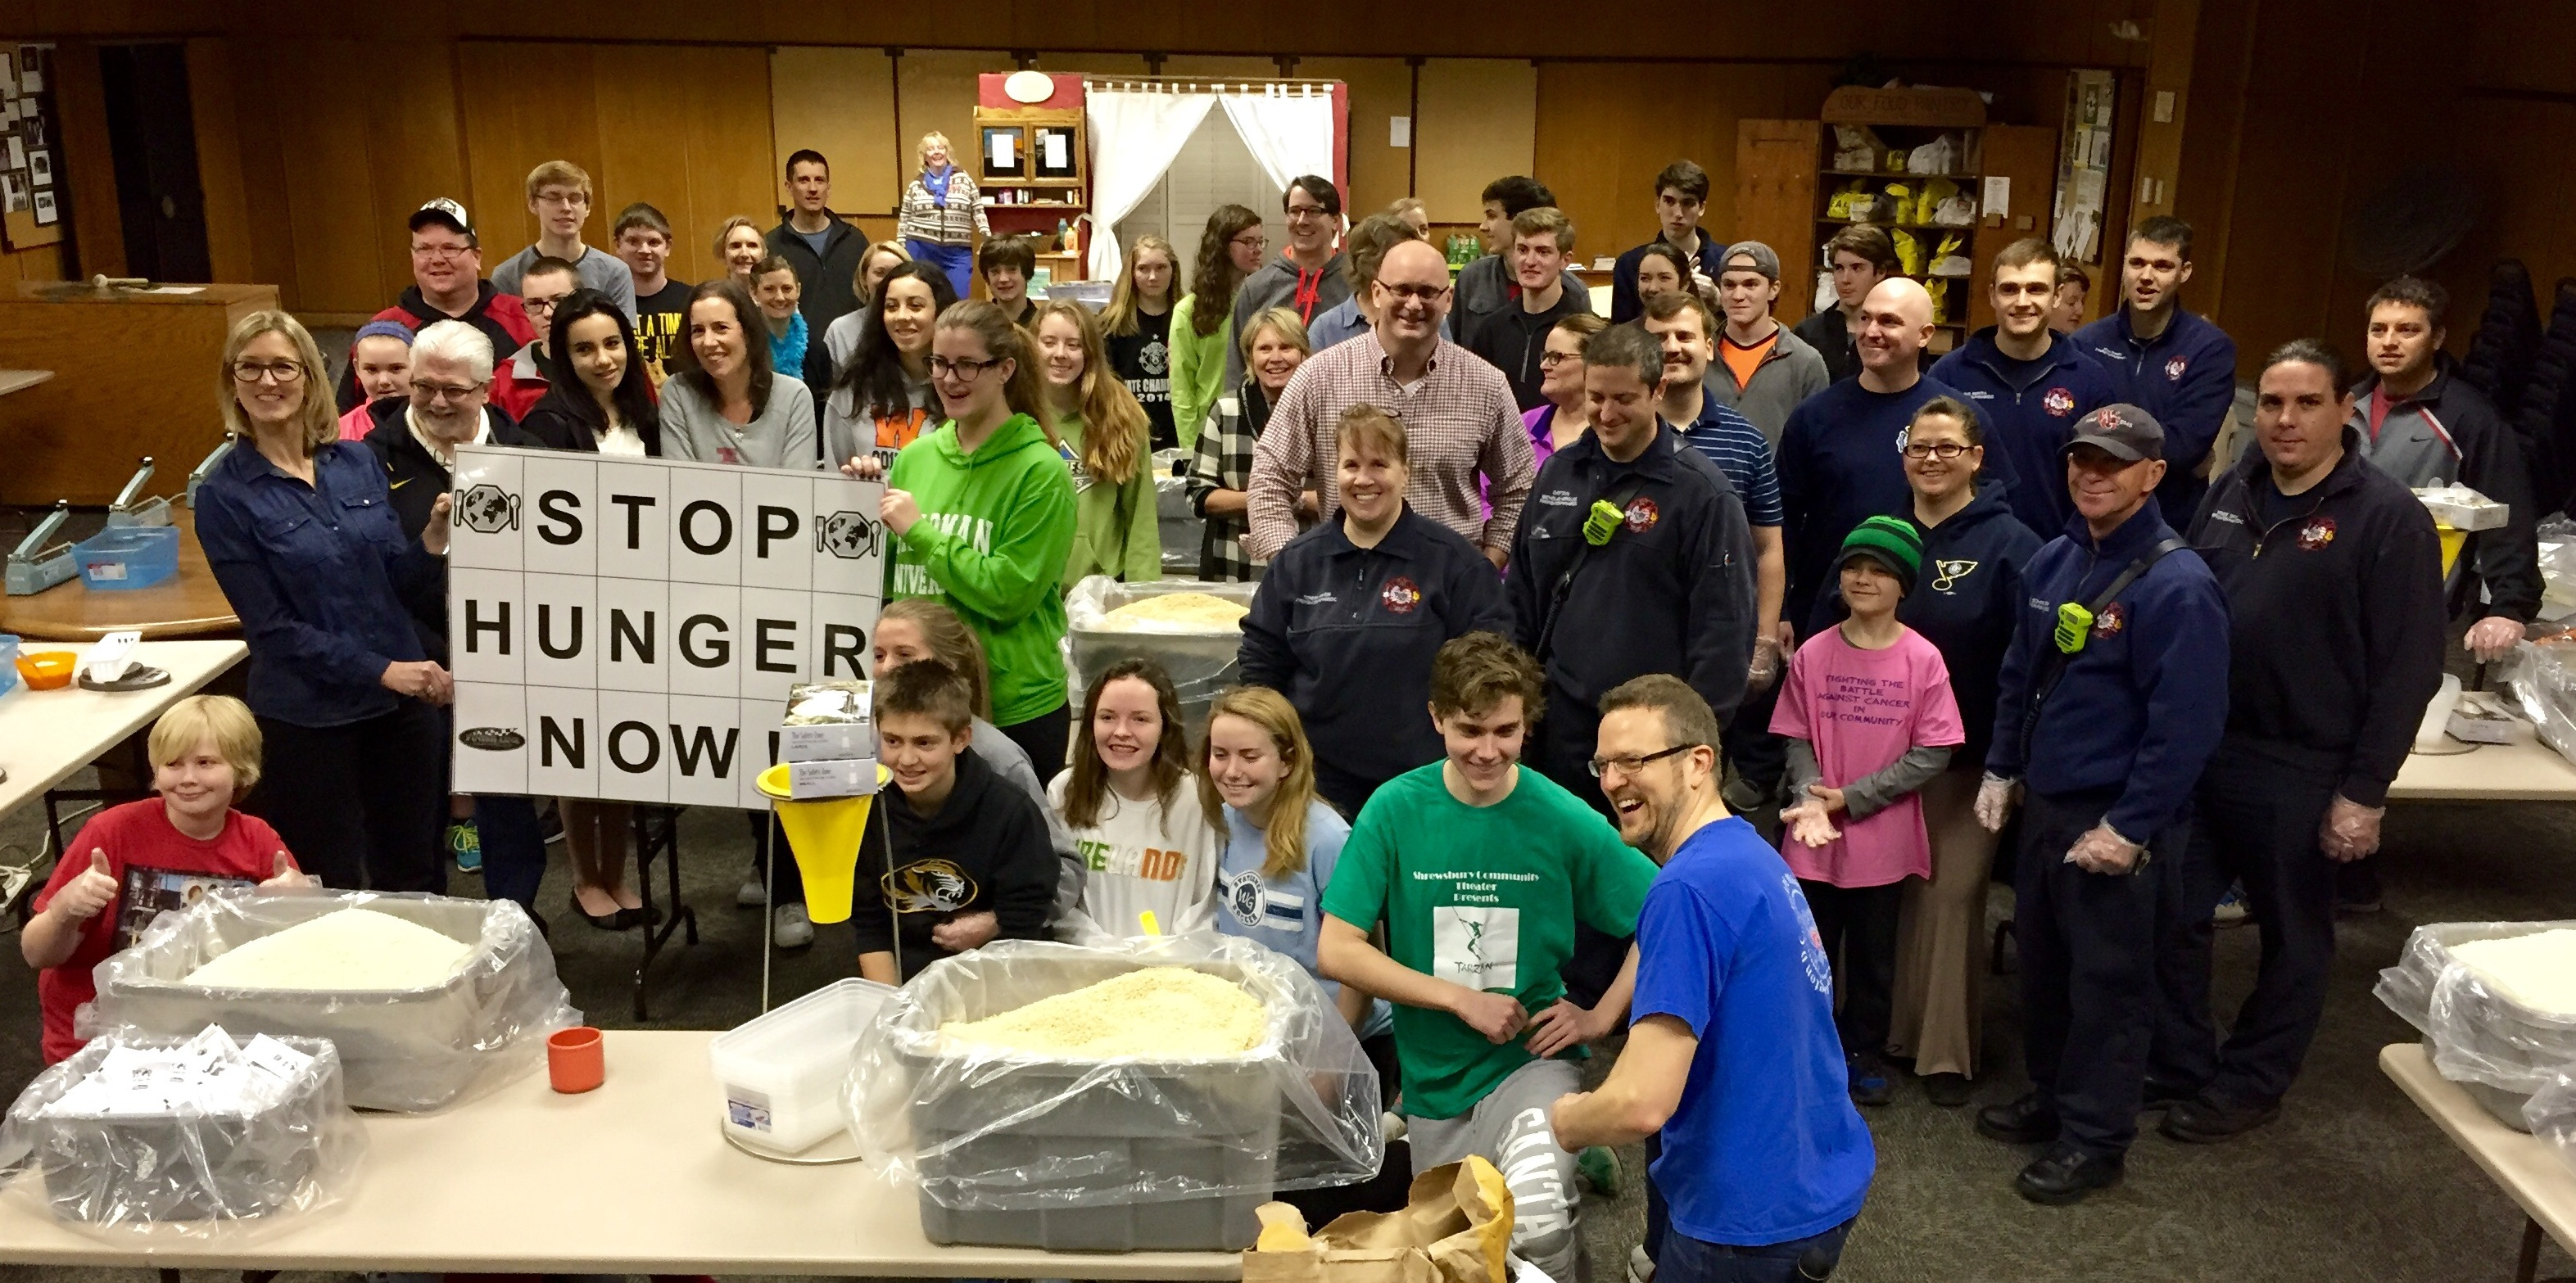 FEEDING THE HUNGRY: Fifteen members of IAFF Local 2665 with the Webster Groves Fire Department and their families teamed with the Webster Groves Presbyterian Church to prepare 20,000 meals for Stop Hunger Now.